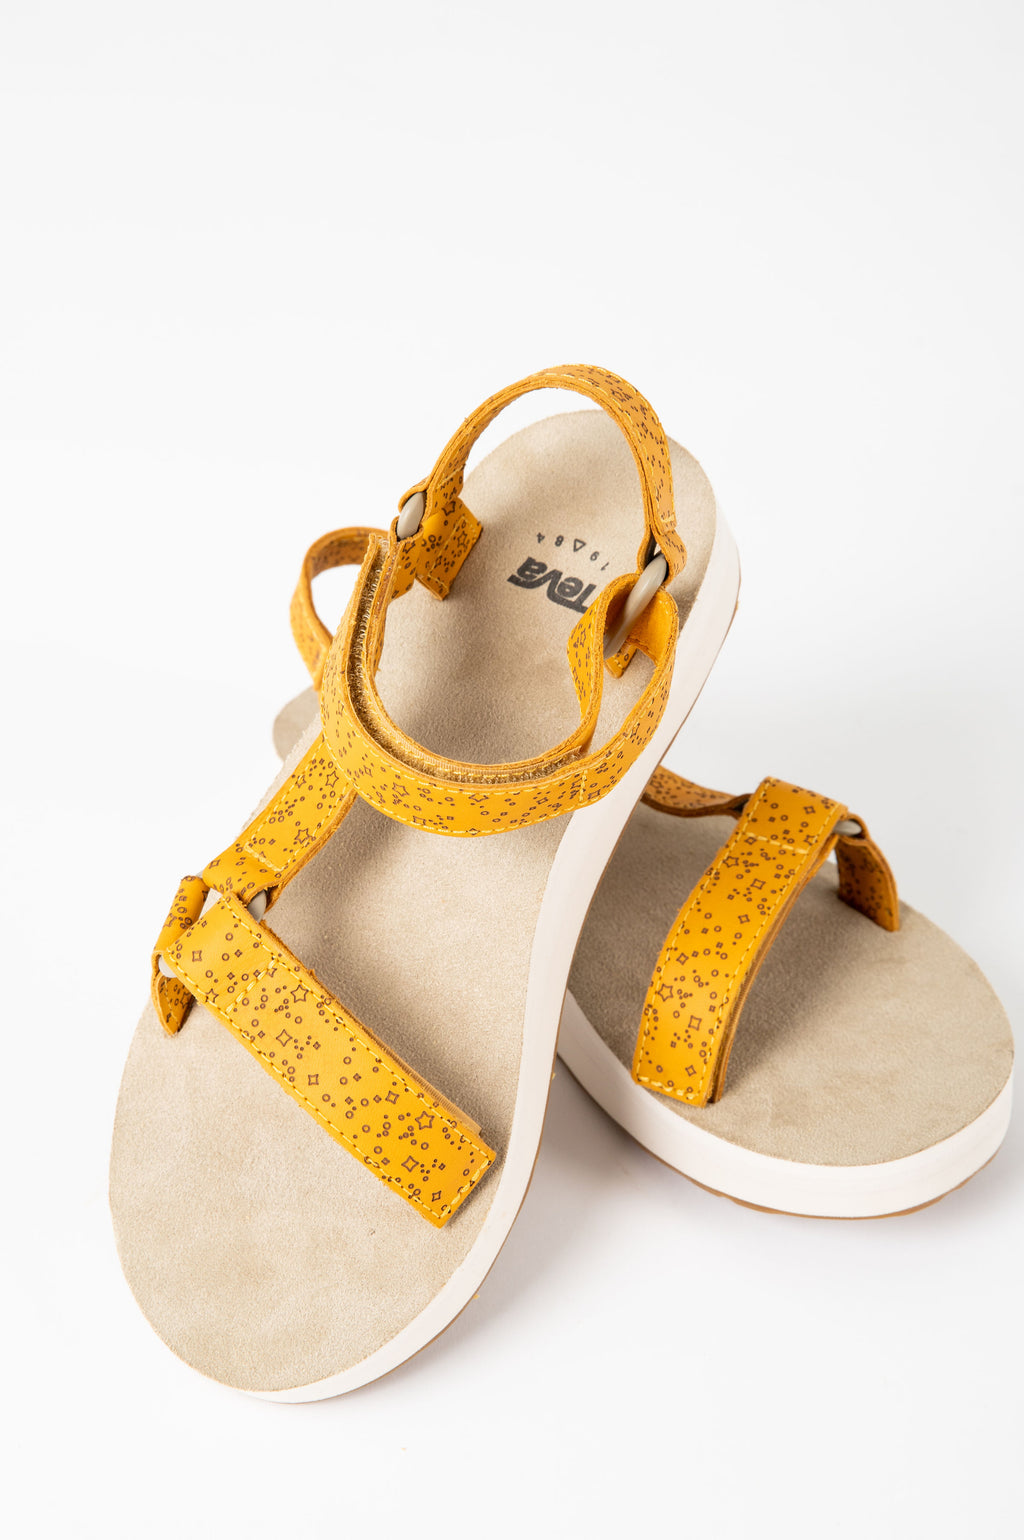 Teva: Midform Universal Star in Sunflower, studio shoot; front view